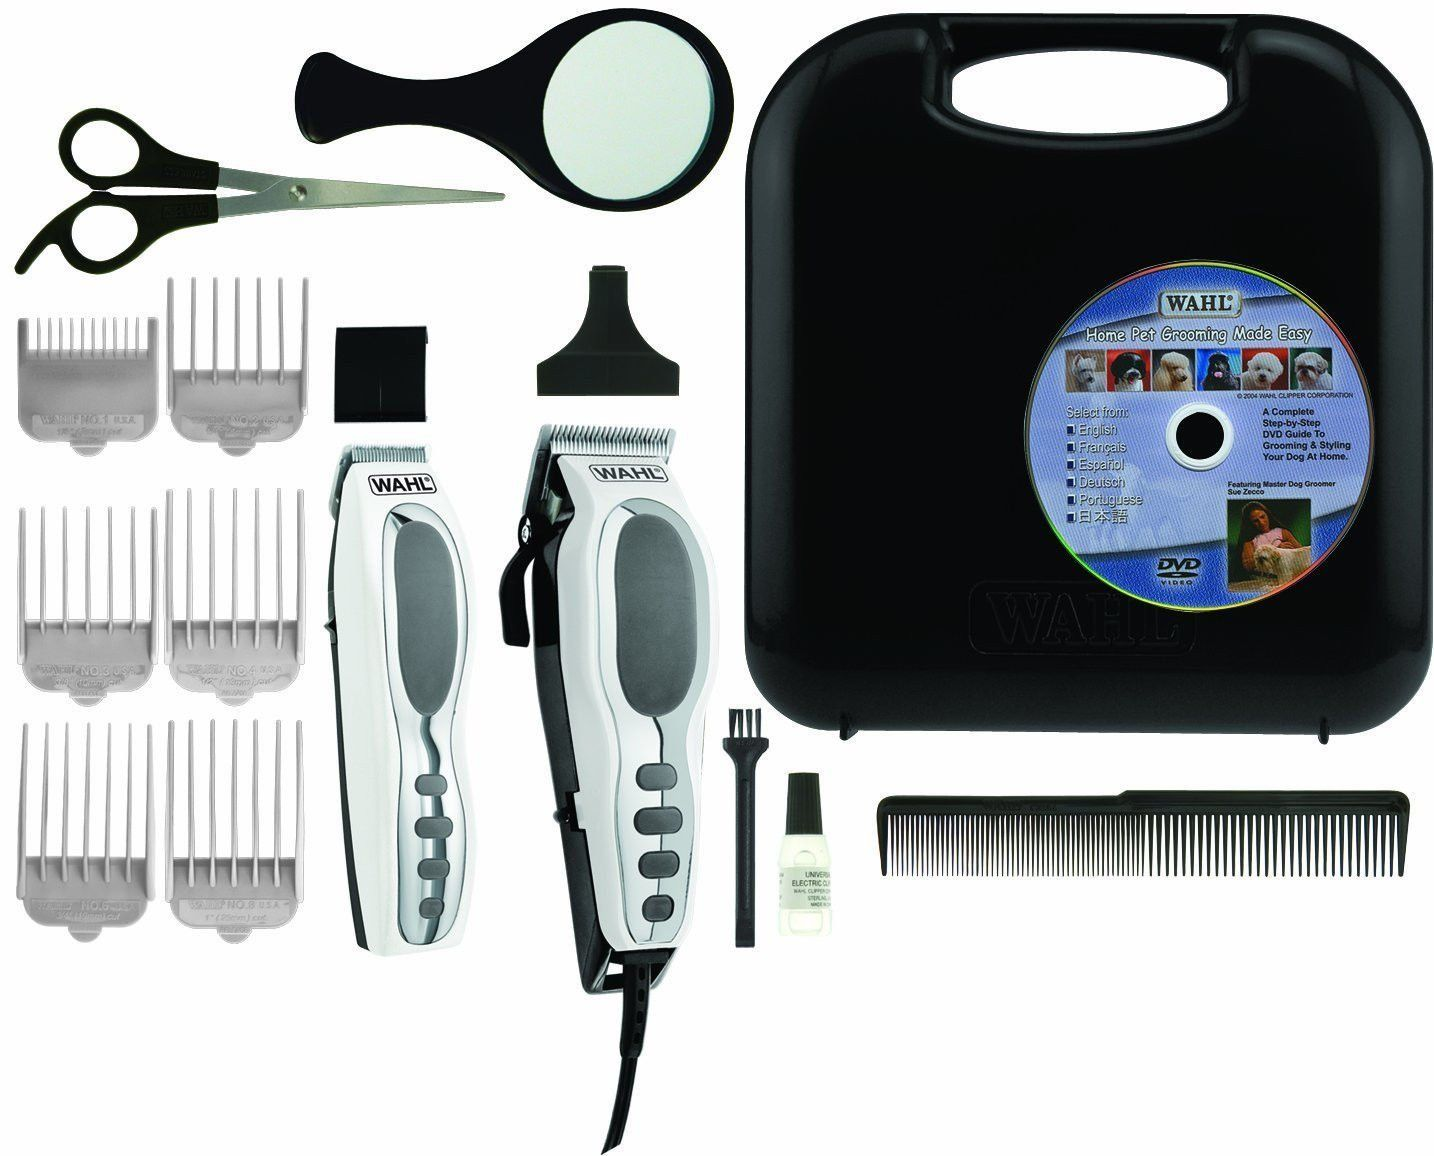 Wahl Professional Pet Grooming Deluxe Kit Clippers Cordless Trimmer Dog Cat New And Awesome Product Awa Pet Grooming Dog Grooming Scissors Cat Grooming Tools